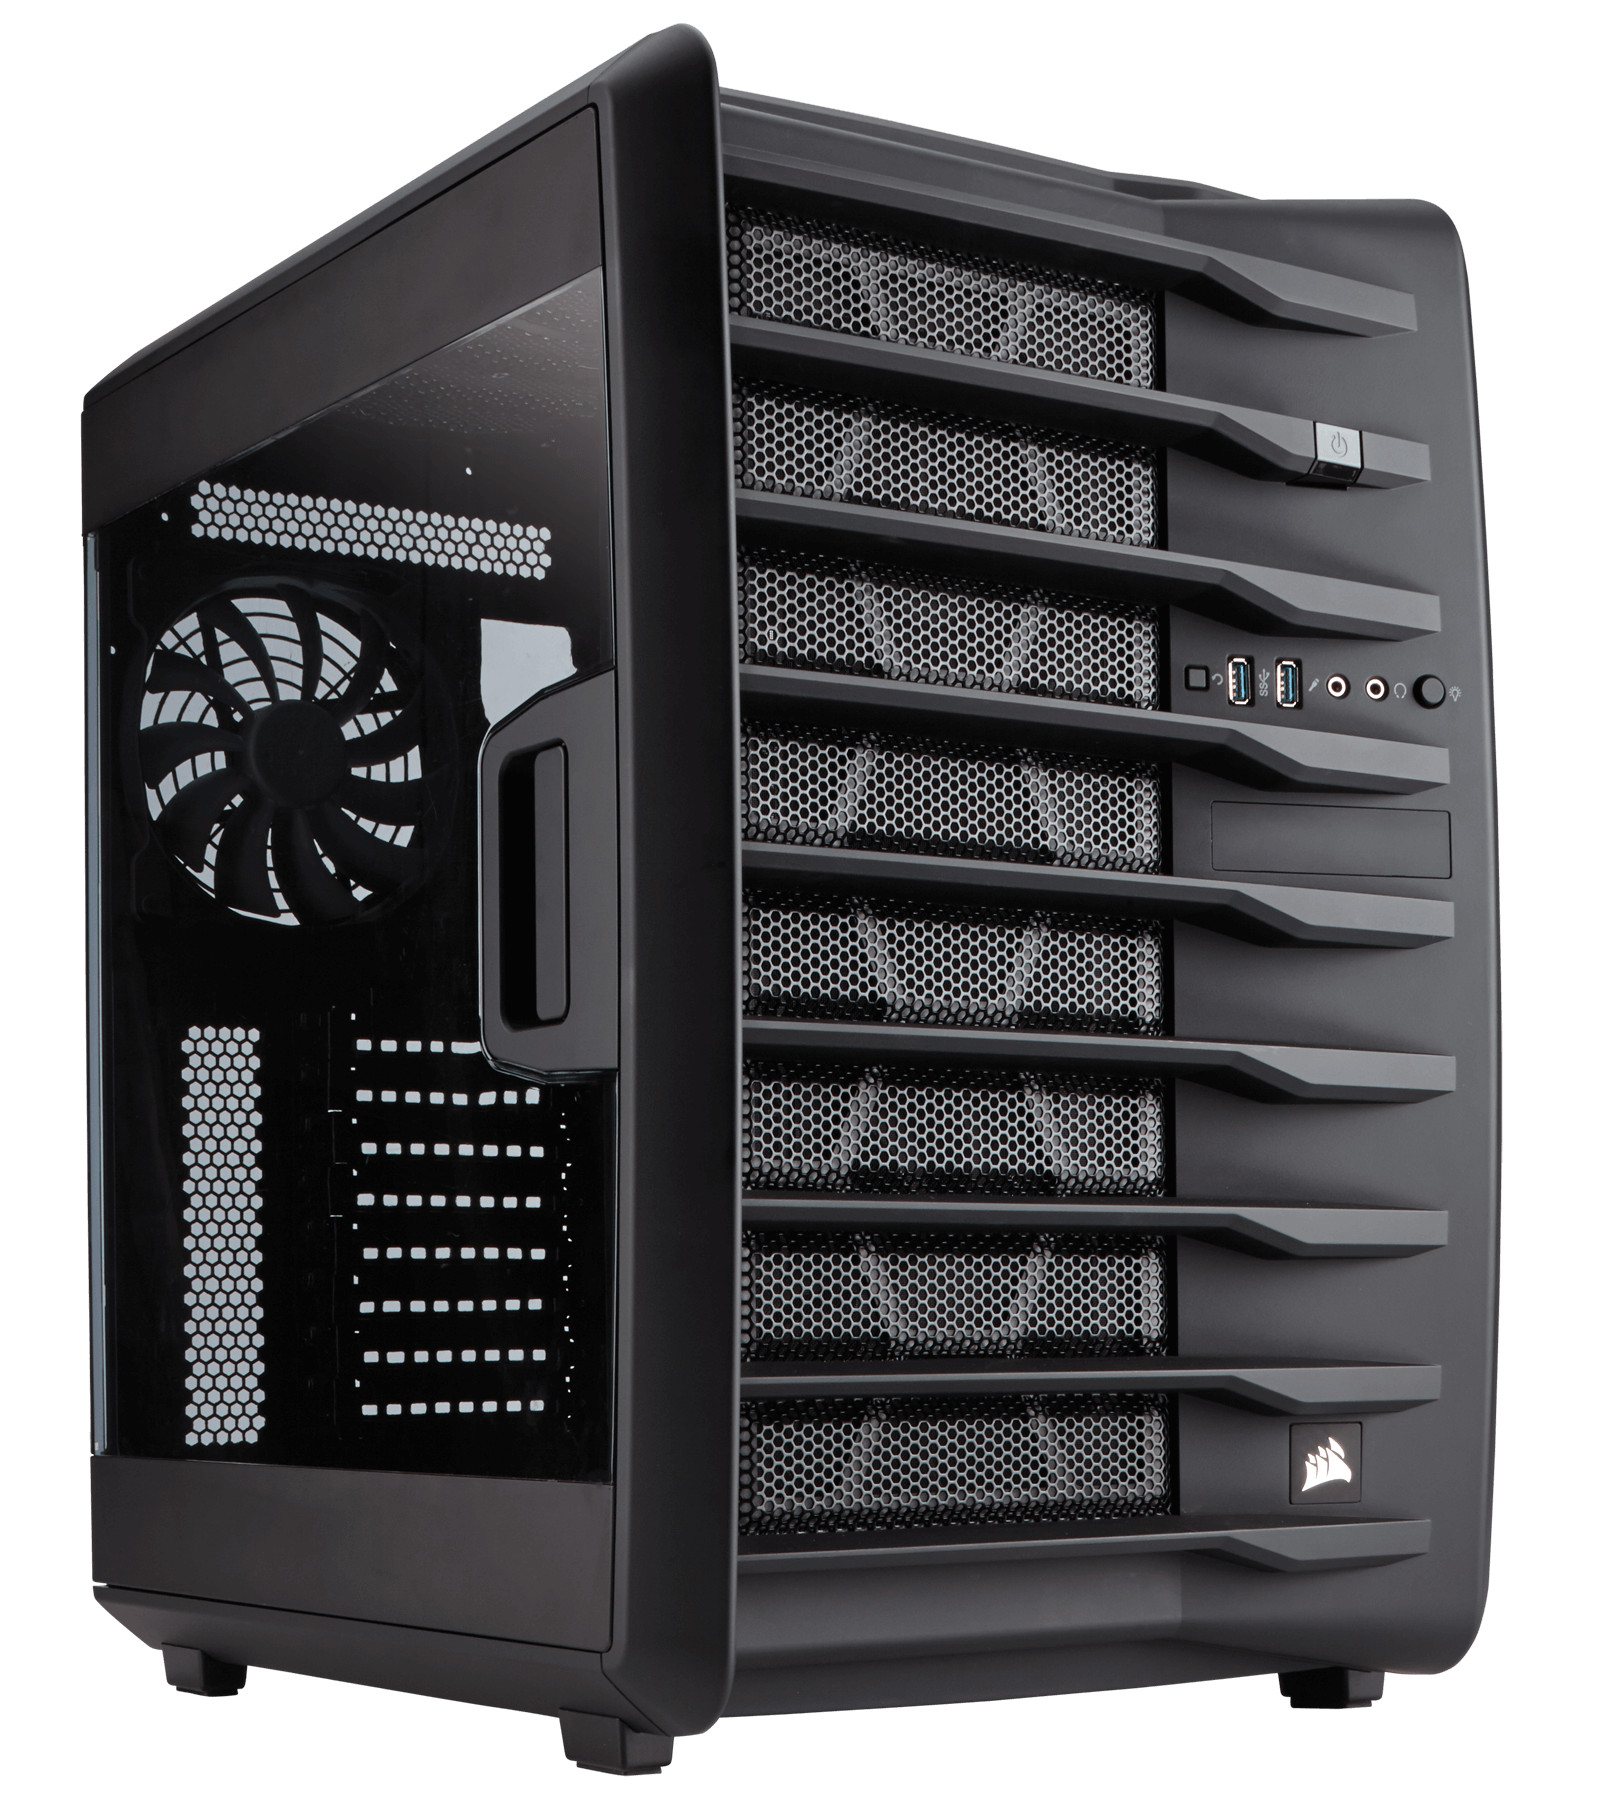 Corsair Carbide Series Air 740 - High Airflow ATX Cube Case (CC-9011096-WW) - CC-9011096-WW